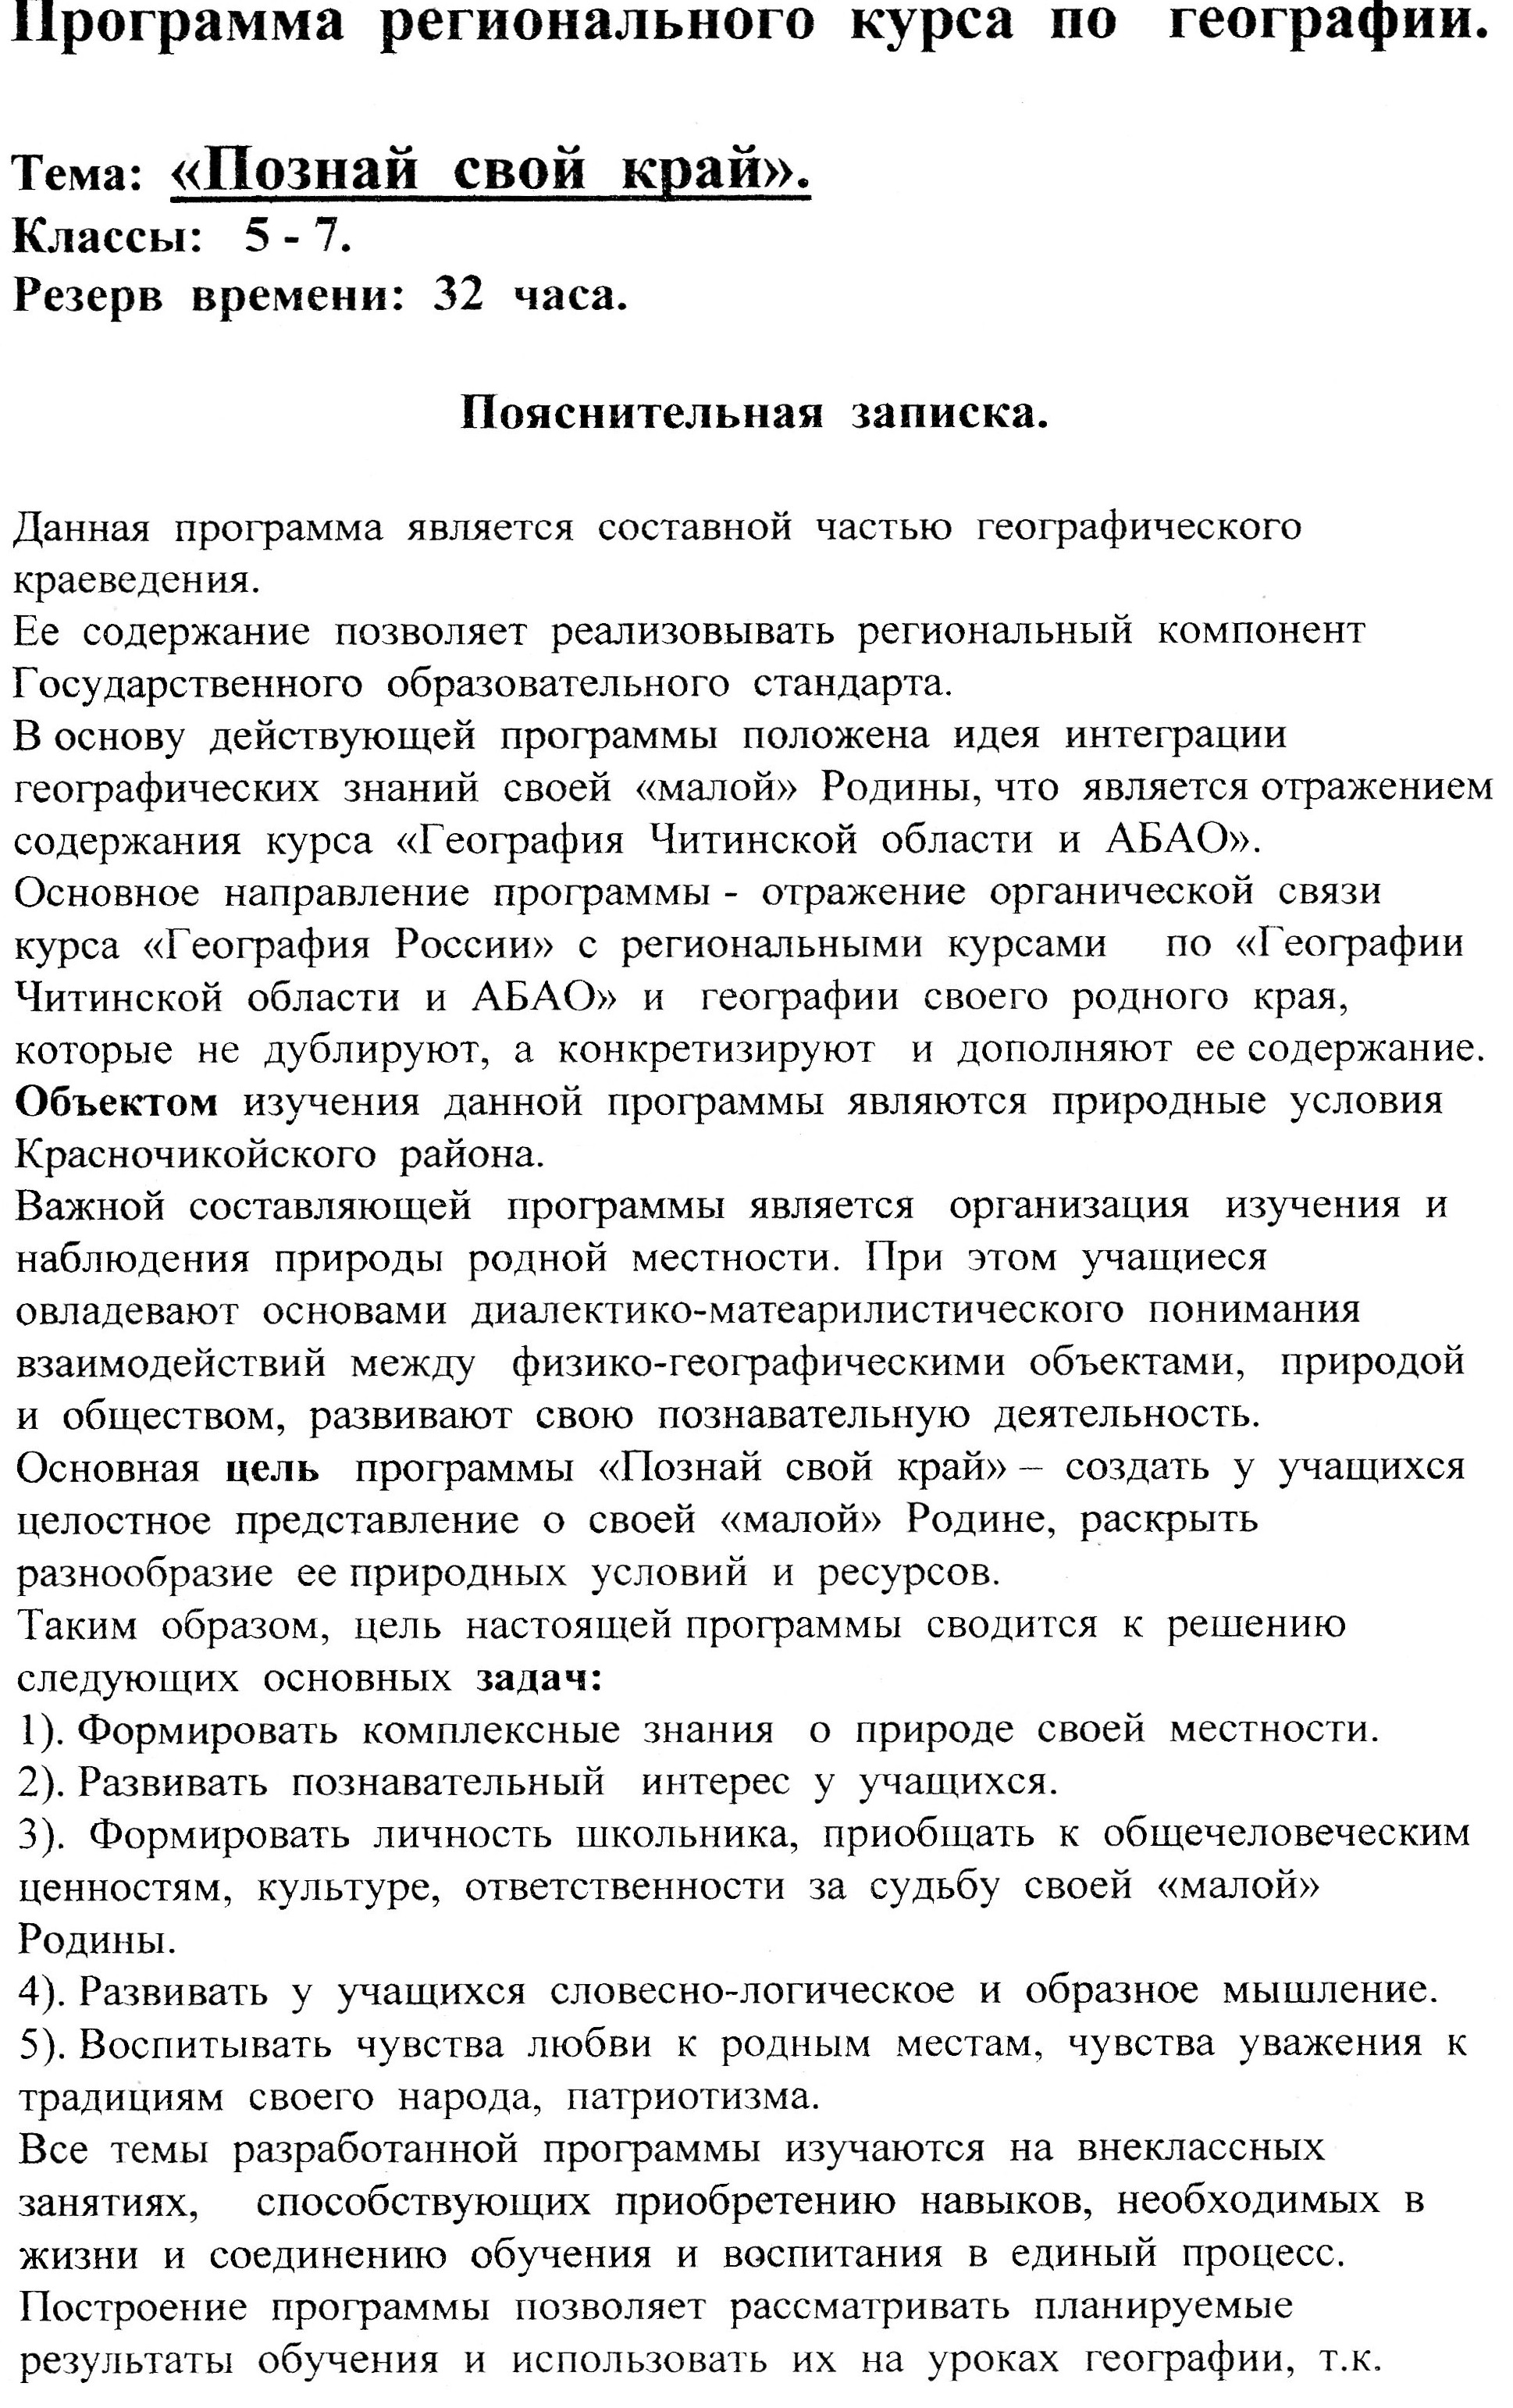 C:\Users\Manul\Pictures\img039.jpg